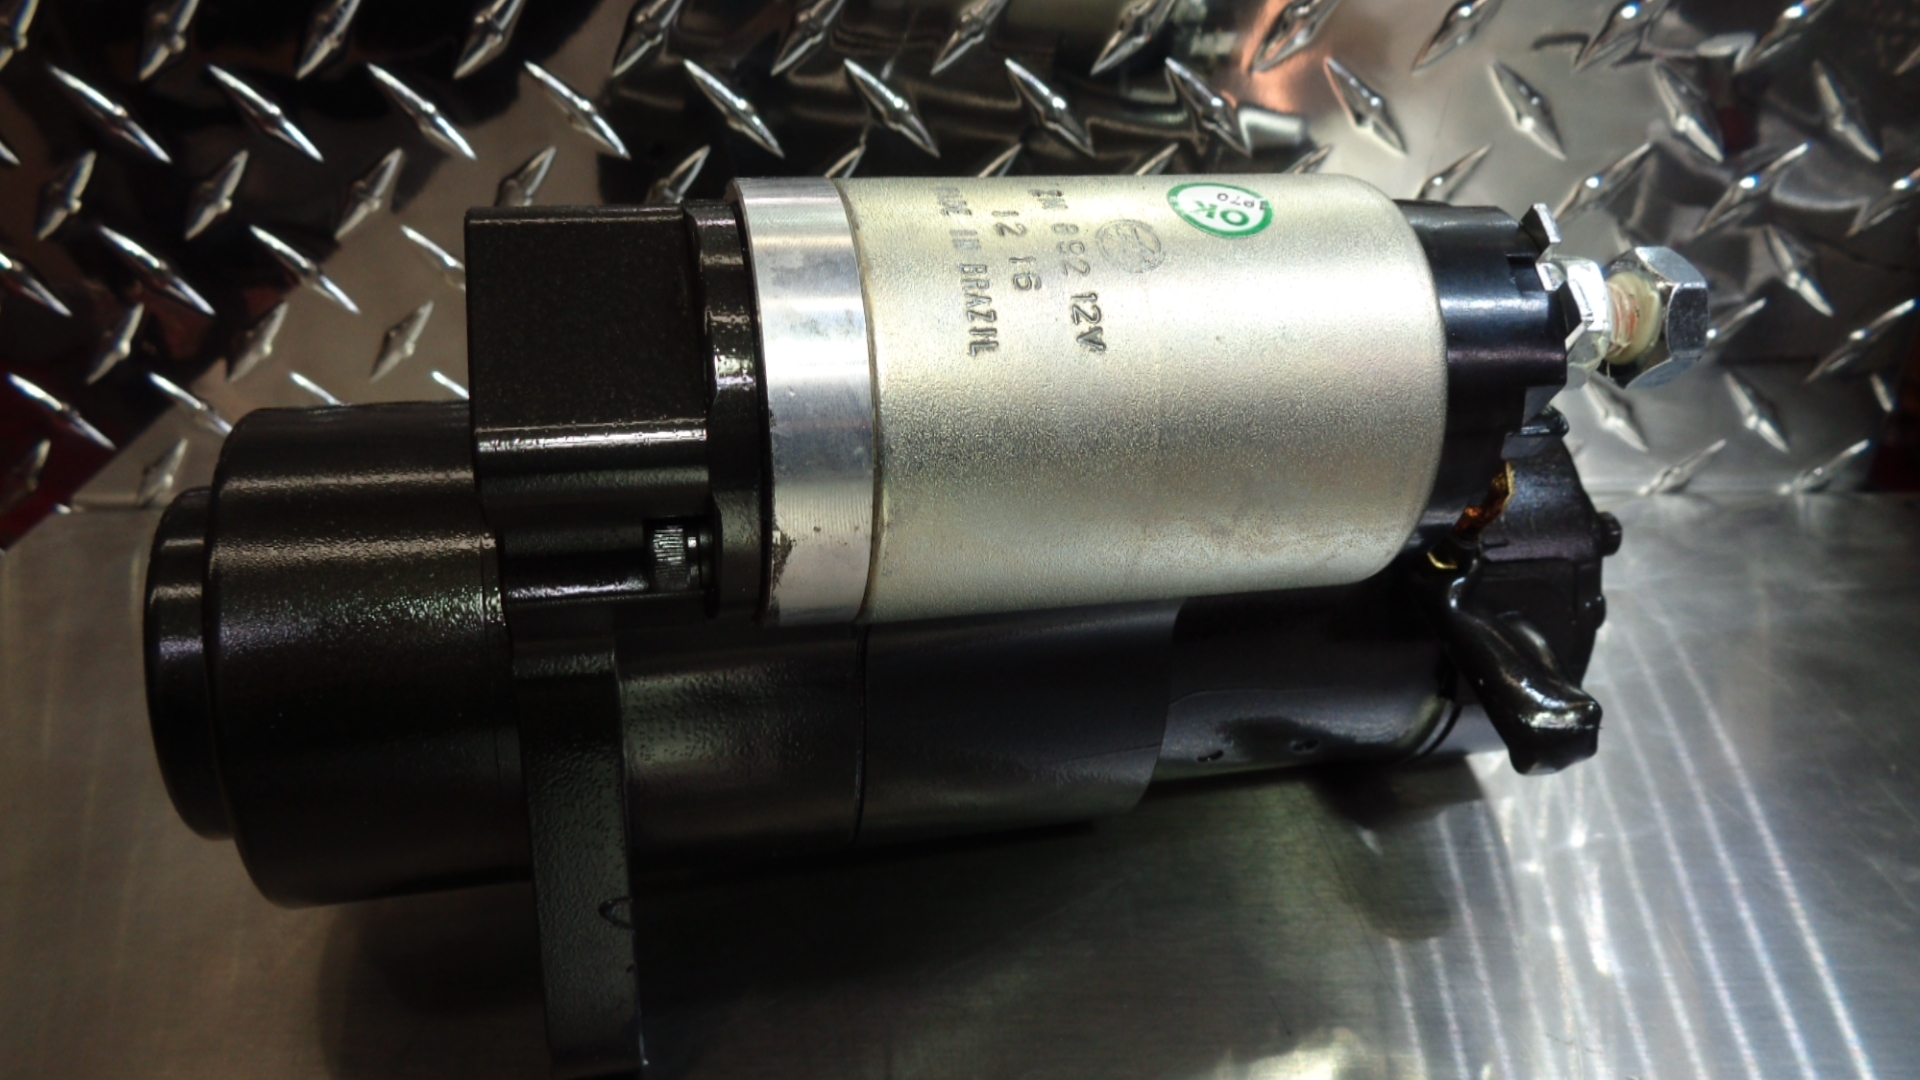 HD reverse motor to post 003